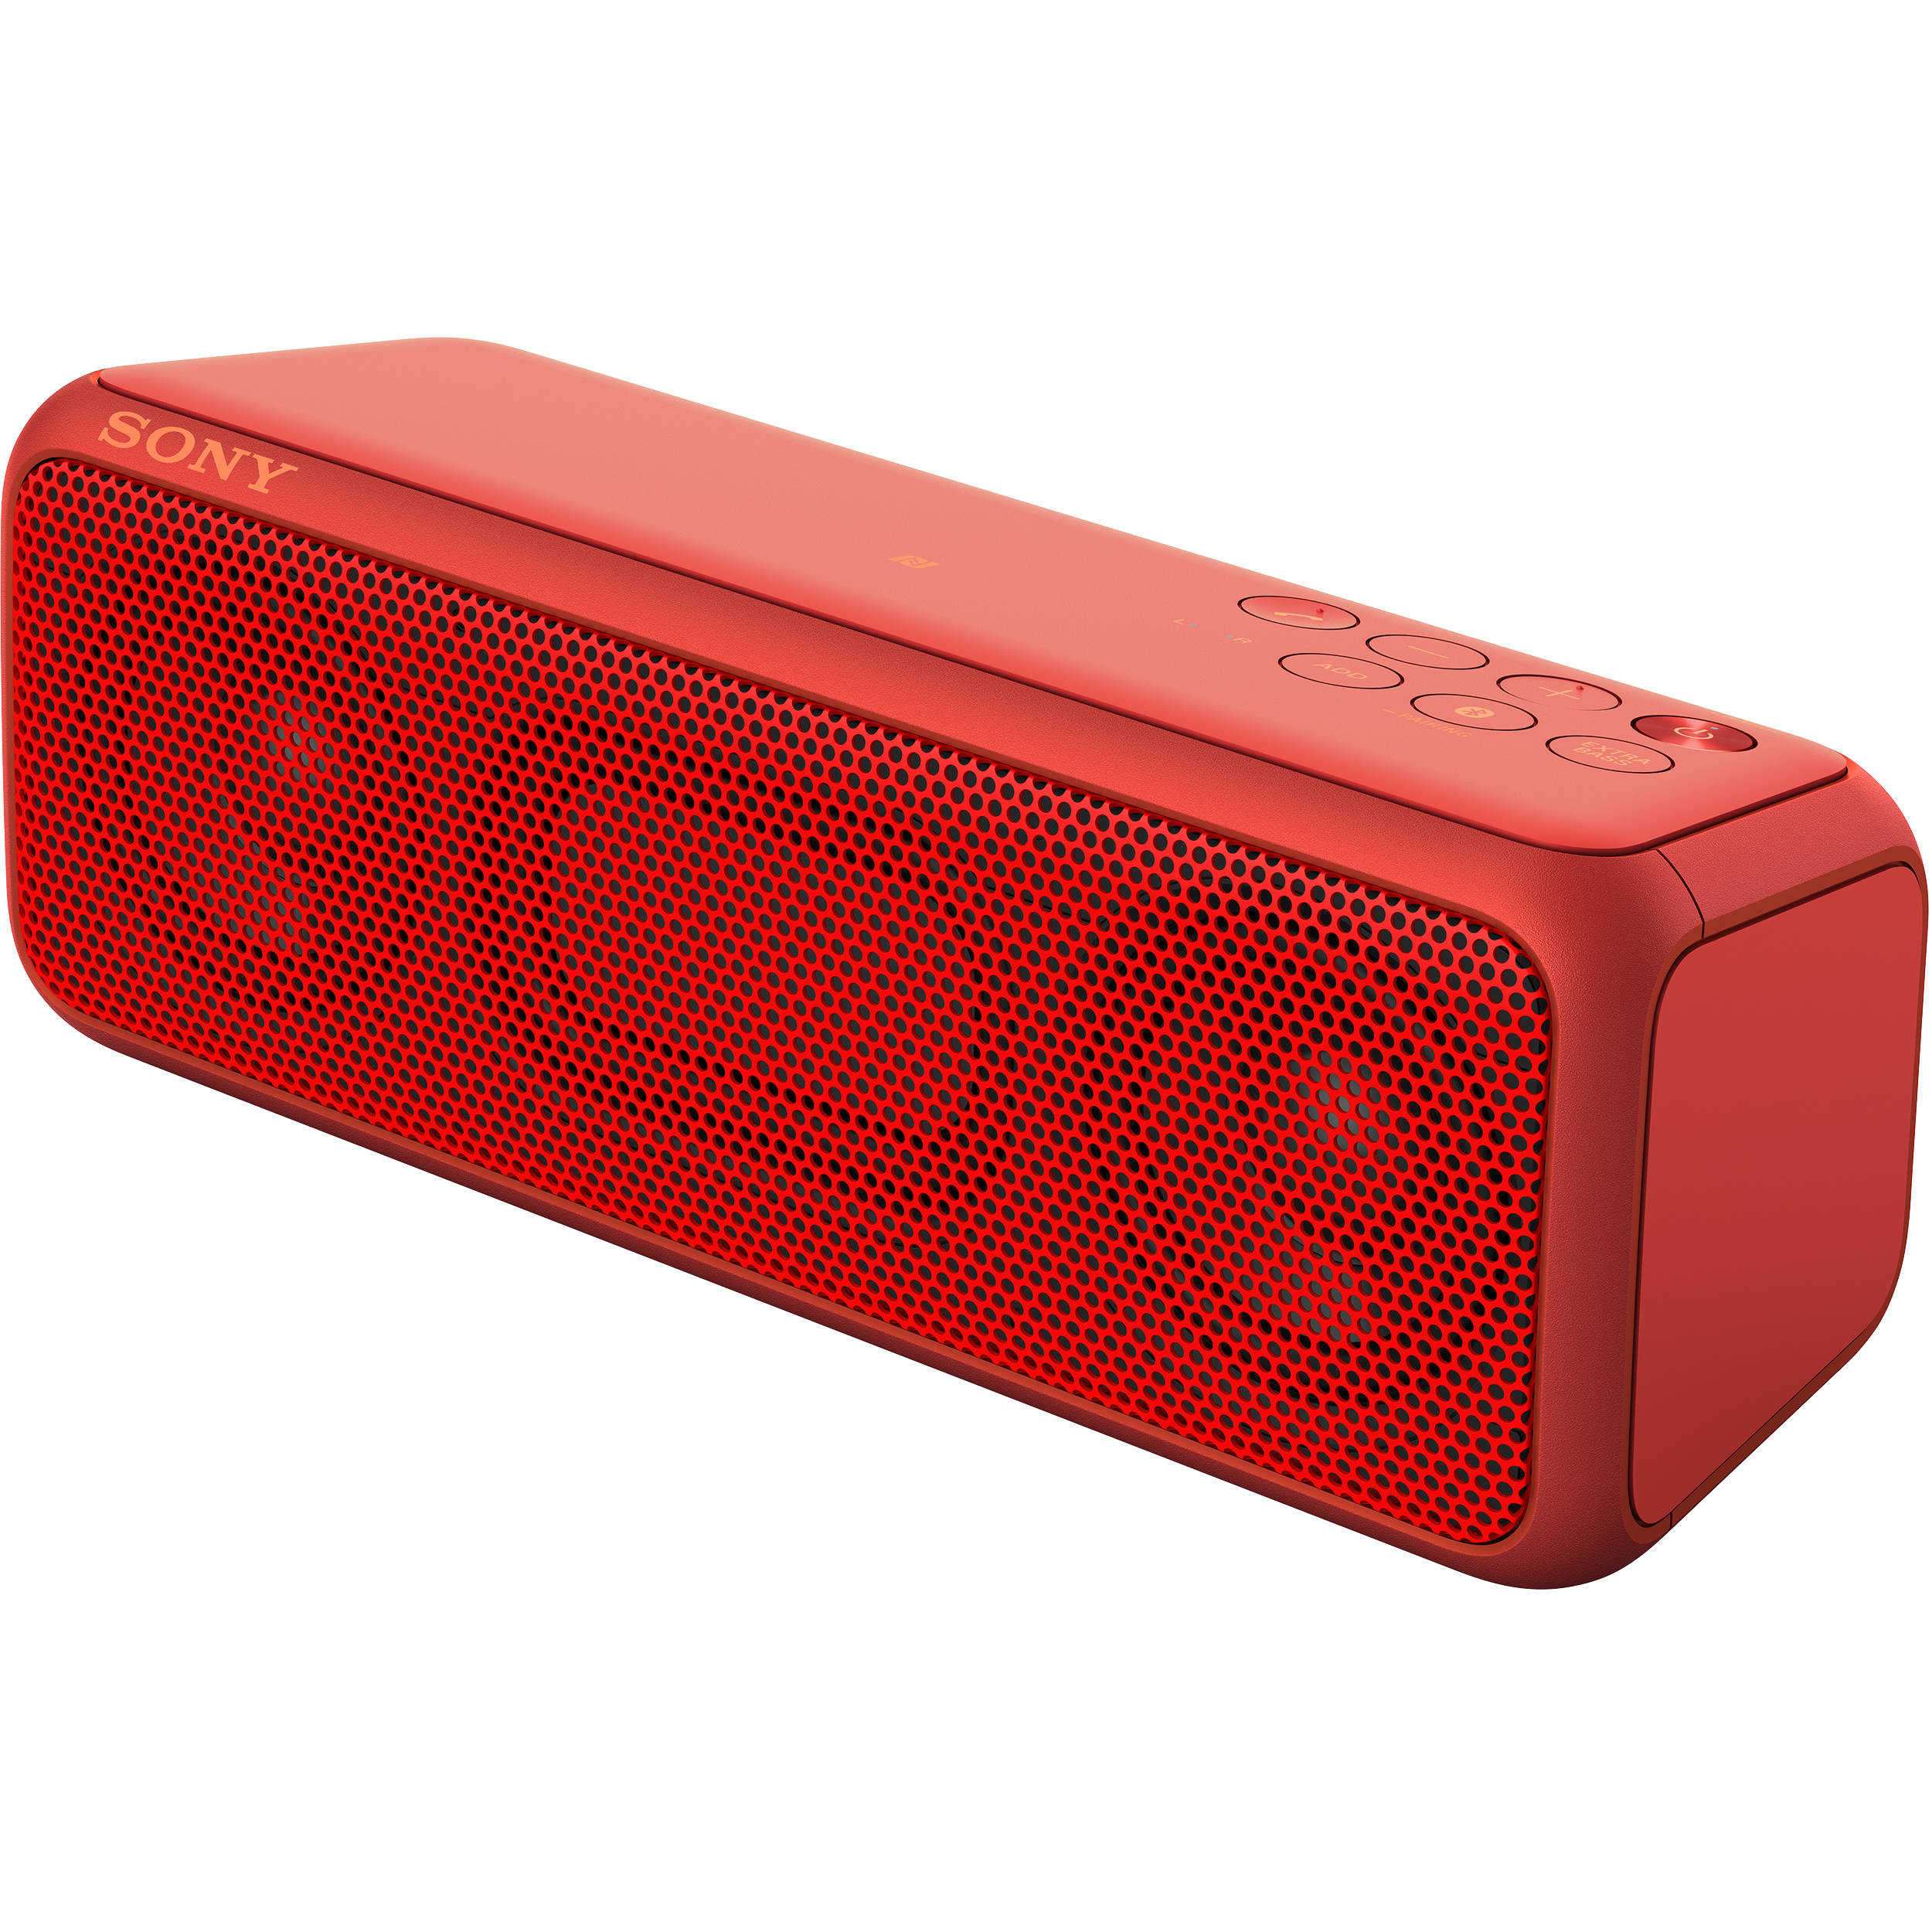 sony wireless speakers. sony srs-xb3 portable bluetooth wireless speaker (red) speakers